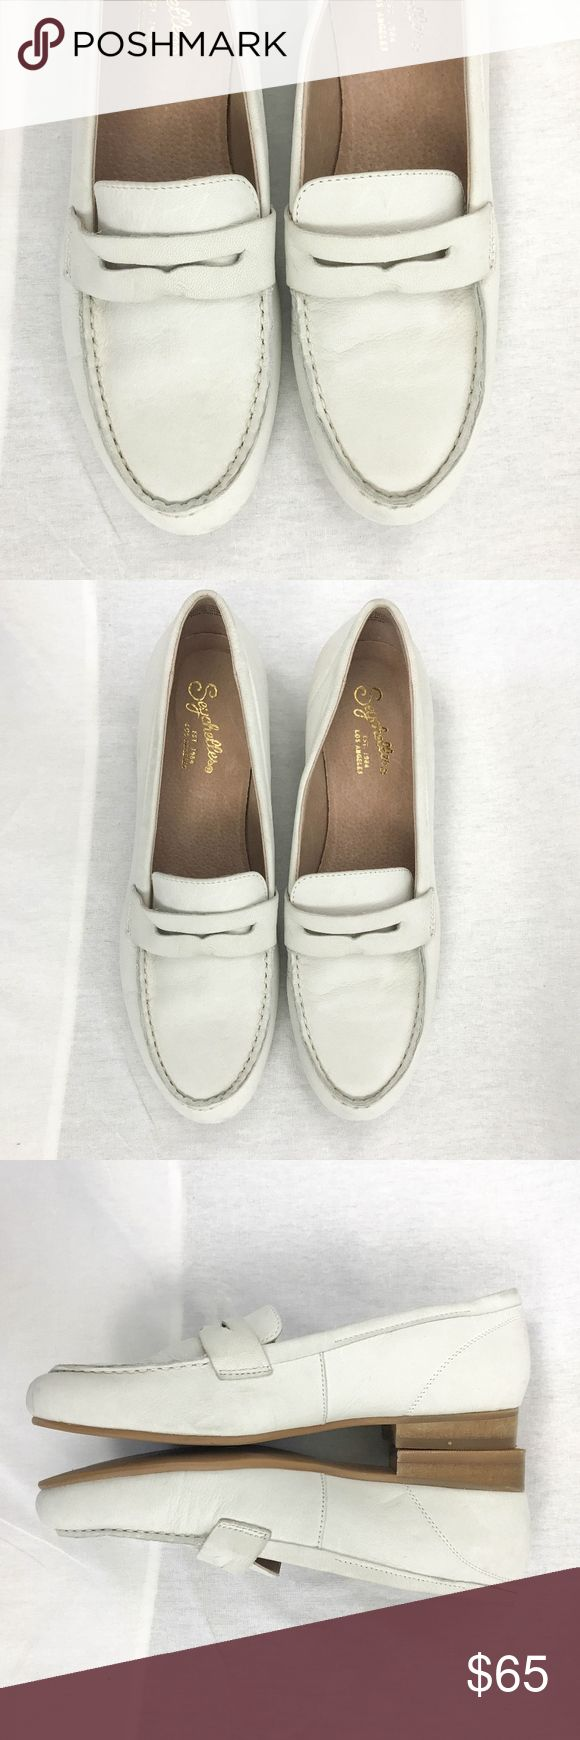 """Seychelles Size 7 Tigers Eye Leather Loafers White Anthropologie Seychelles Campaign 7 Weekenders Tigers Eye Leather Loafer White  Type: Flat Shoe  Style: Loafer  Brand: Seychelles  Material: Leather Upper  Color: Off White  Measurements: Heel 3/4""""  Condition: There is scuffing and marks on the heels and wrinkling on the straps.  Country of Manufacturer: India Seychelles Shoes Flats & Loafers"""